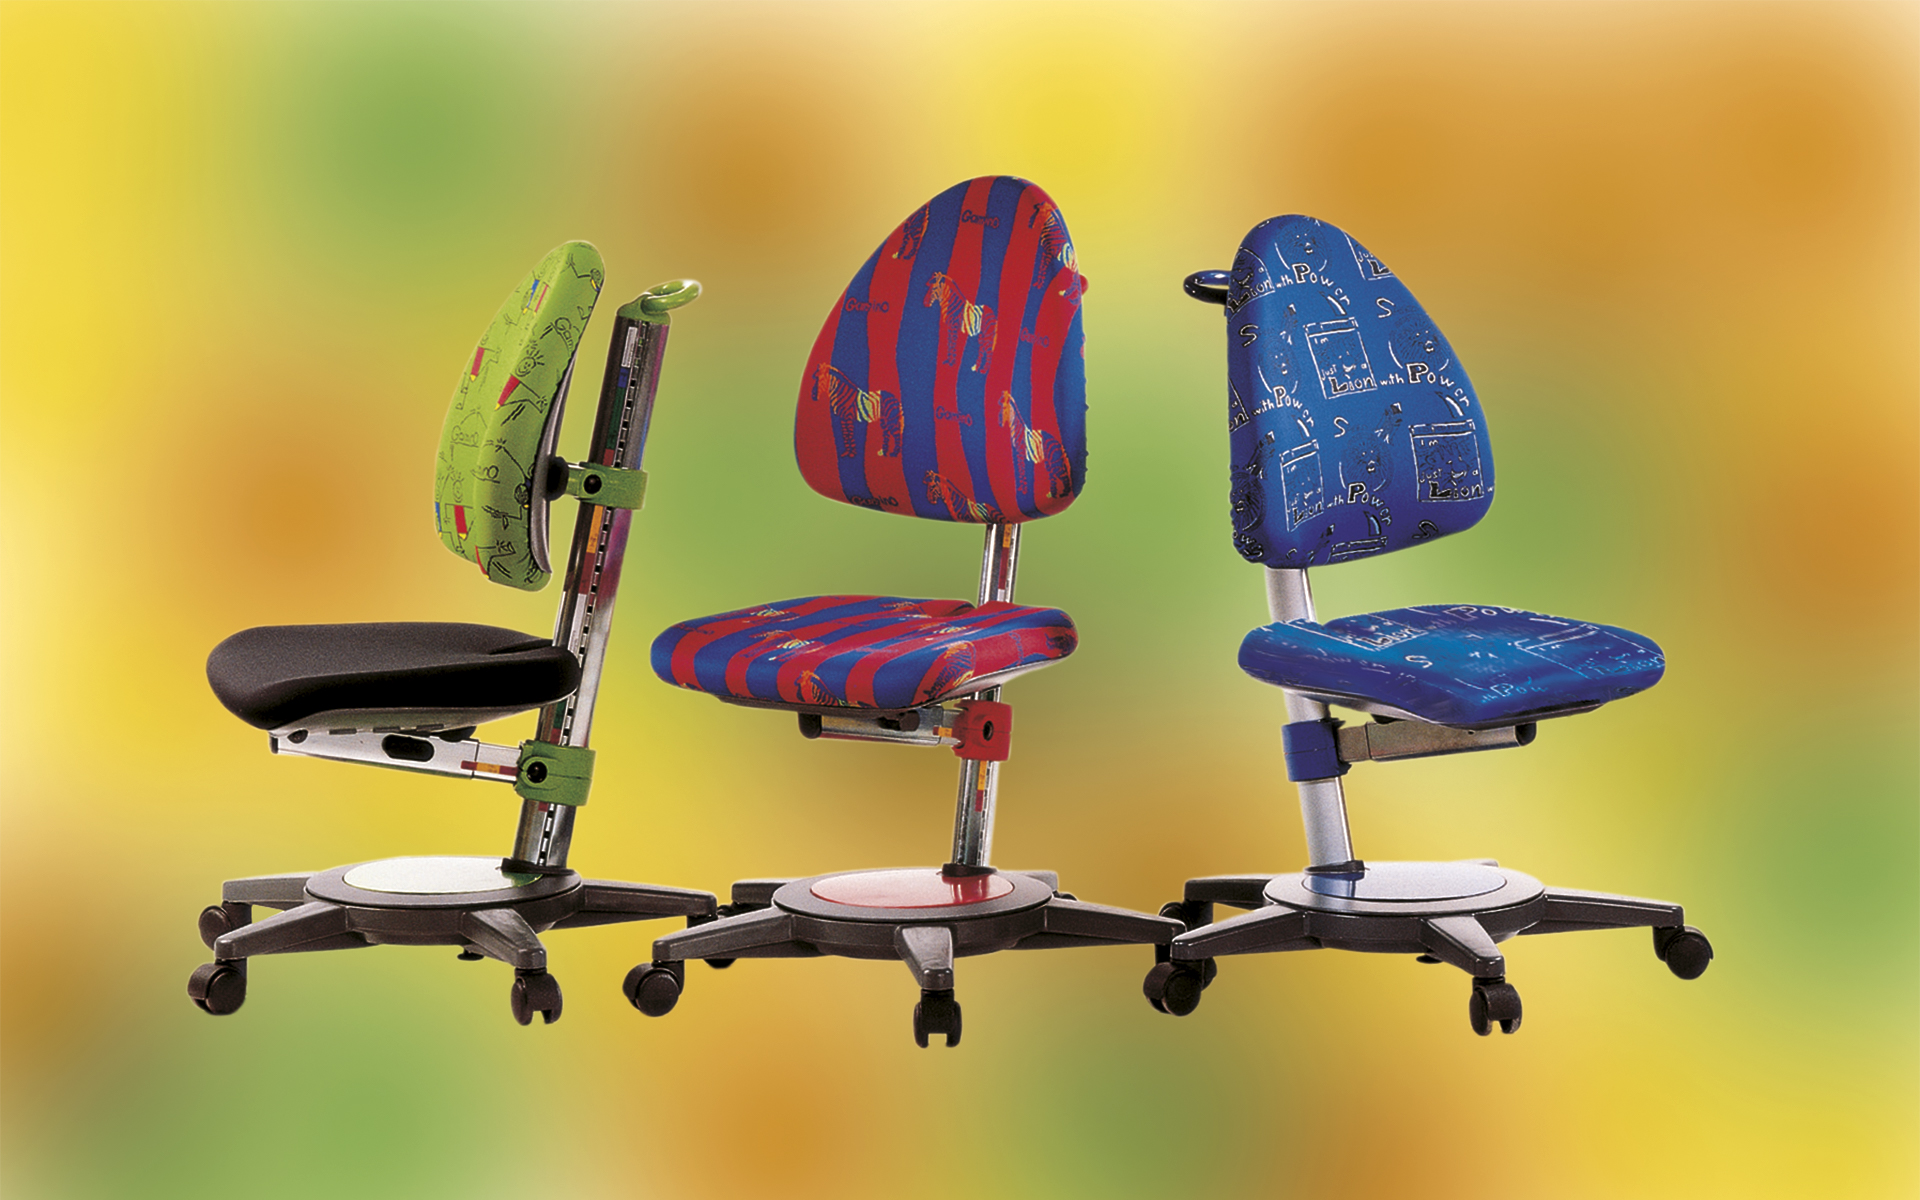 Three Moll Gamino children's desk chairs by ITO Design with colorful upholstery